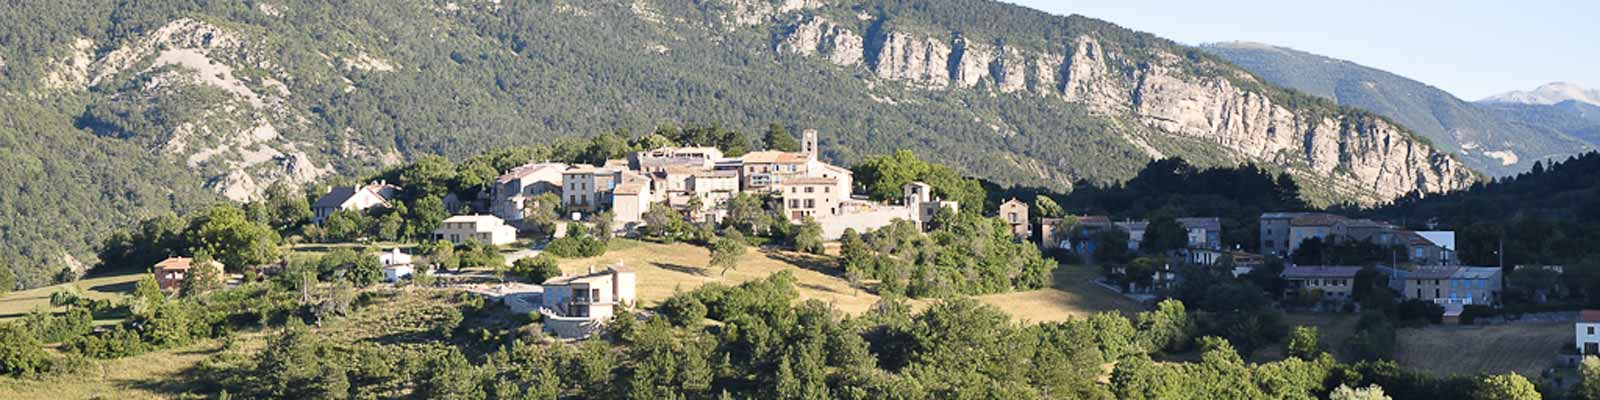 saint julien du verdon tourisme